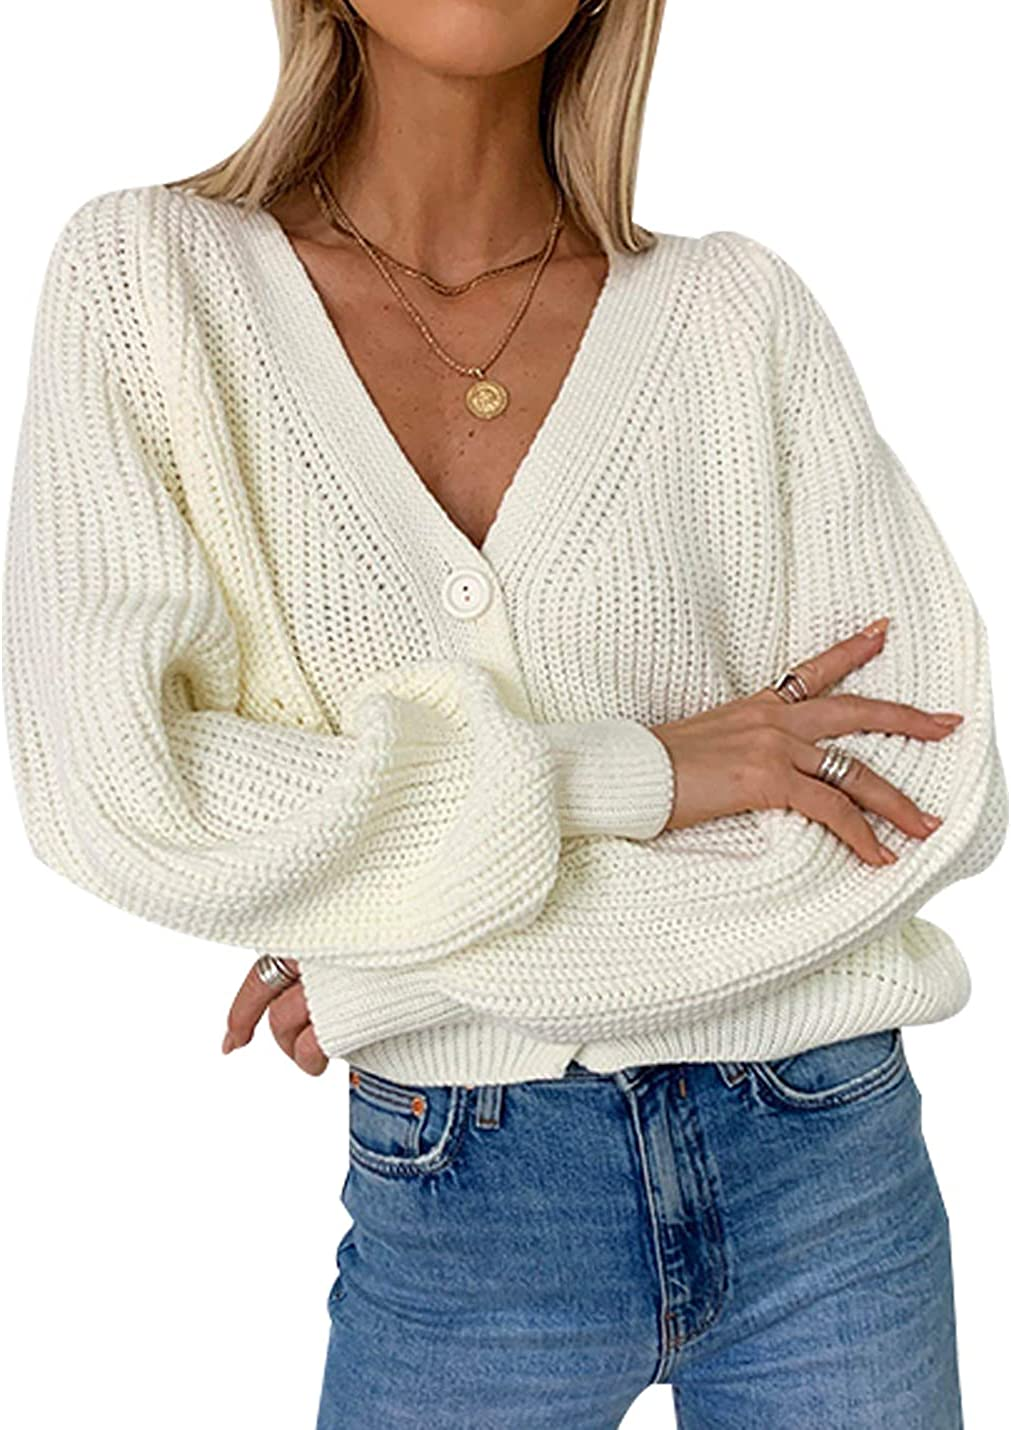 Uaneo Womens Ribbed Knit V-Neck Long Balloon Sleeve Button Down Cardigan Sweaters(White-S)